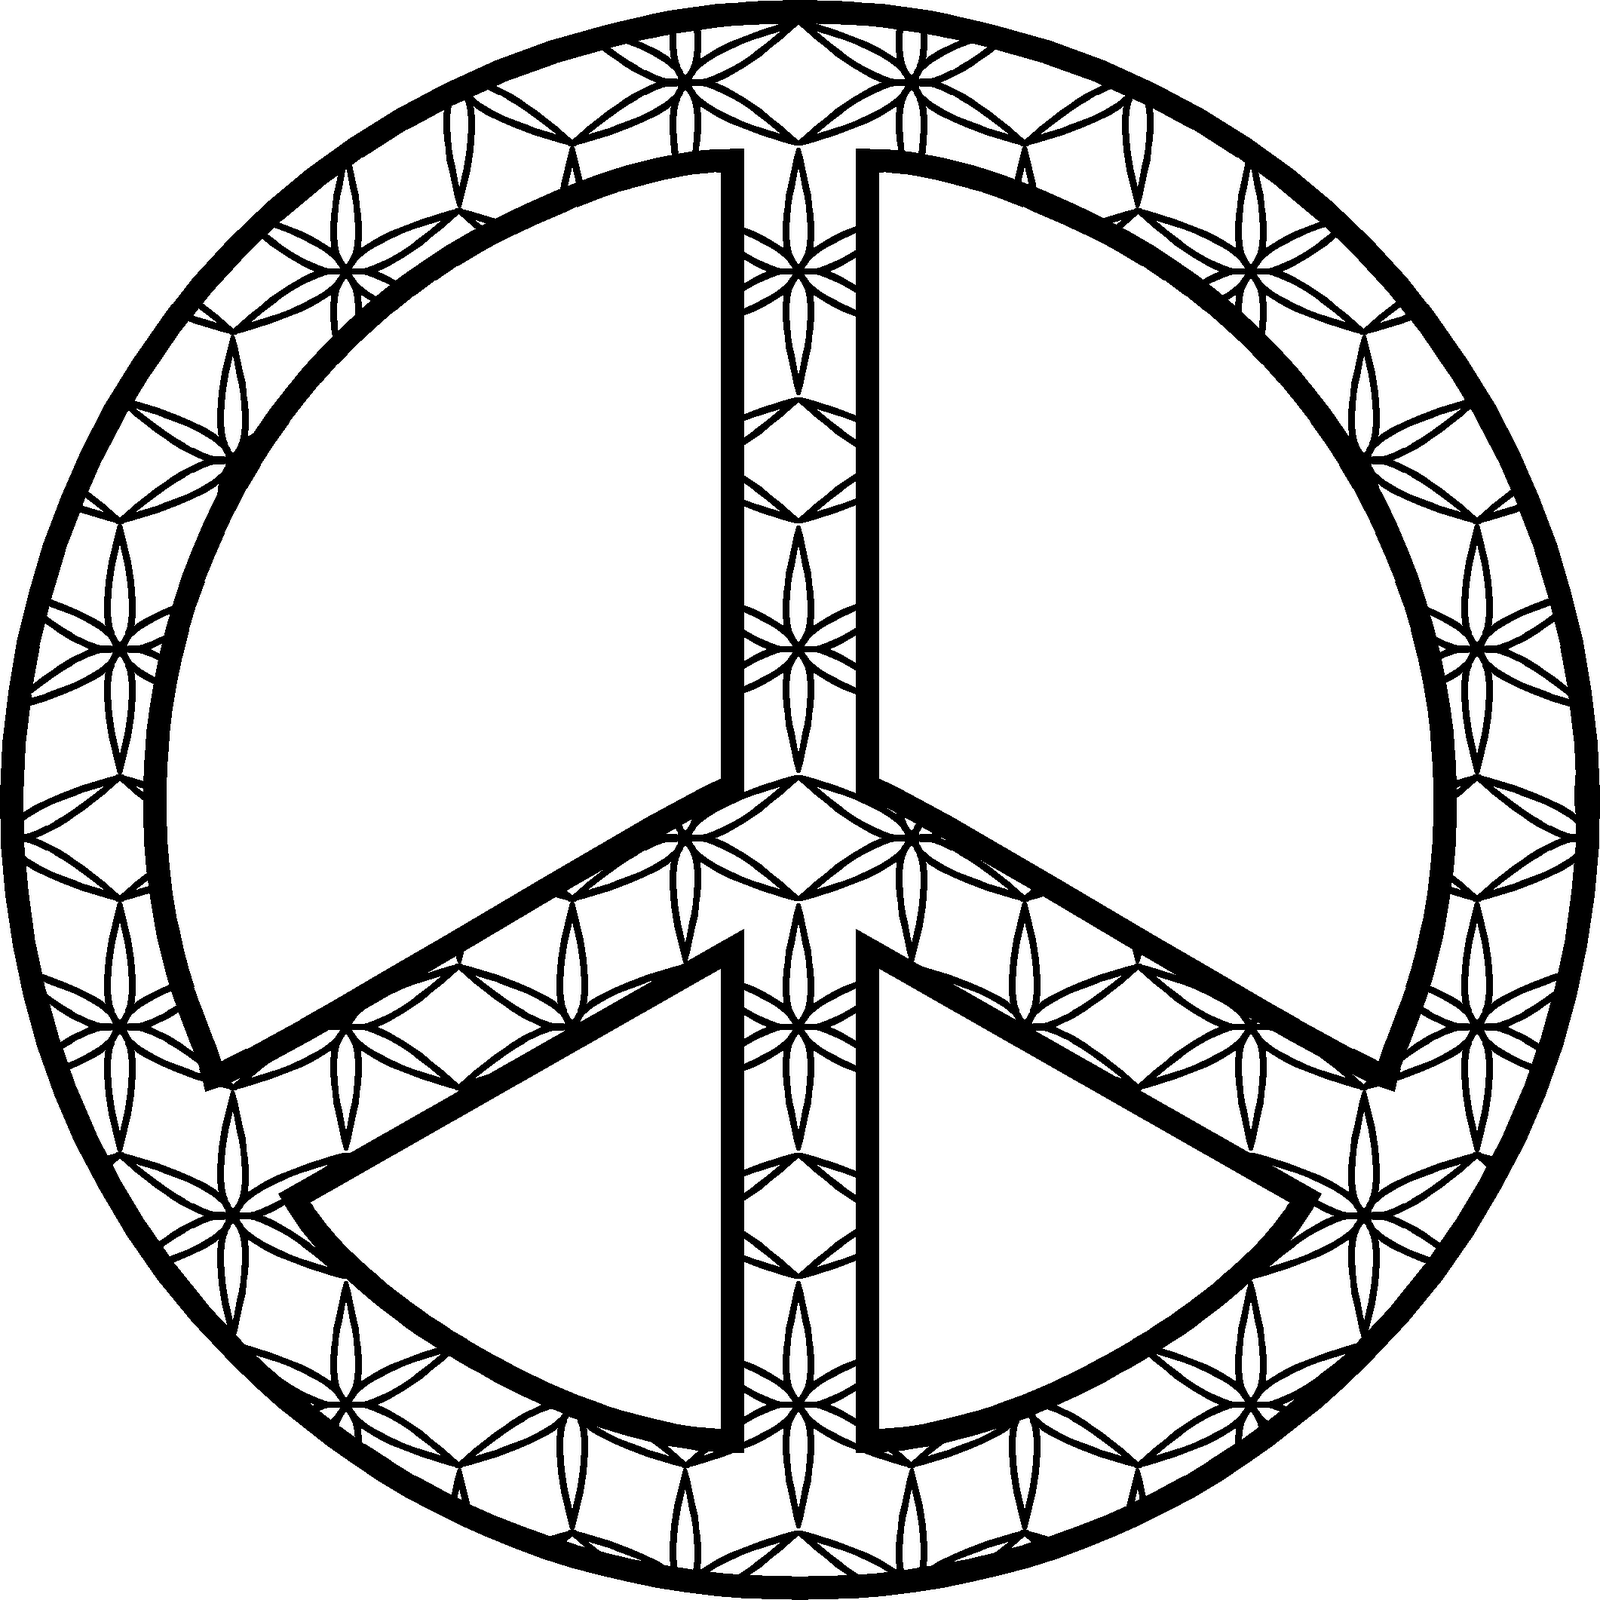 Peace symbols | Peace sign drawing, Coloring pages, Love ...